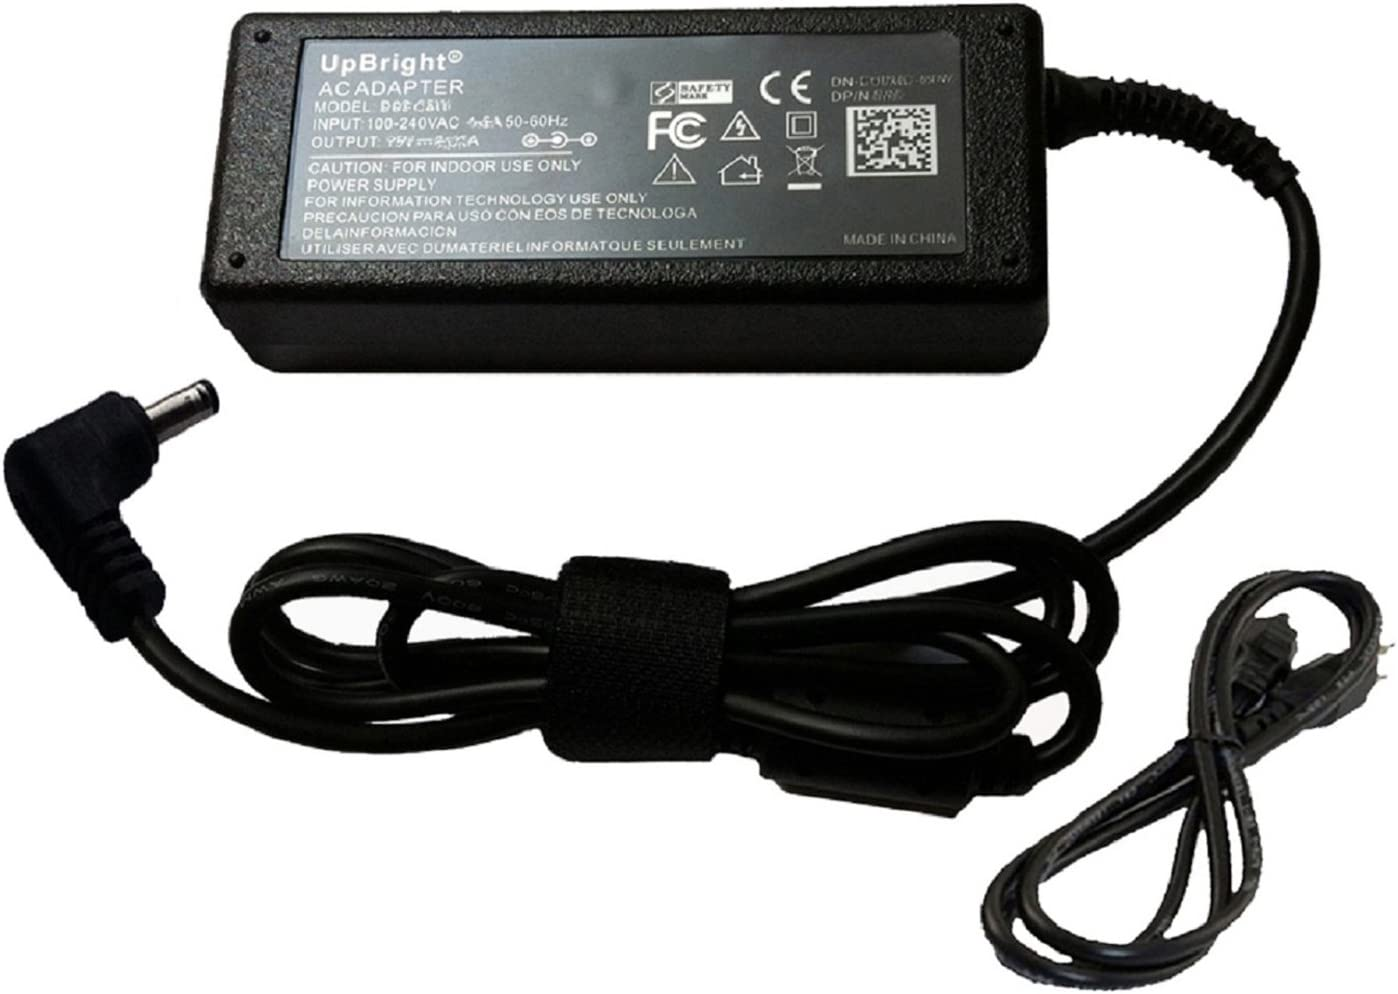 UpBright 19V AC/DC Adapter Compatible with Asus RT-AC68U AC68R AC68W AC56U AC56R AC1200 AC1900 Router C200 C300 X200L X200CA CT121H P553M E402M E402S R540 X541 F553 X102BA 14 TP401 TP201SA 19VDC Power